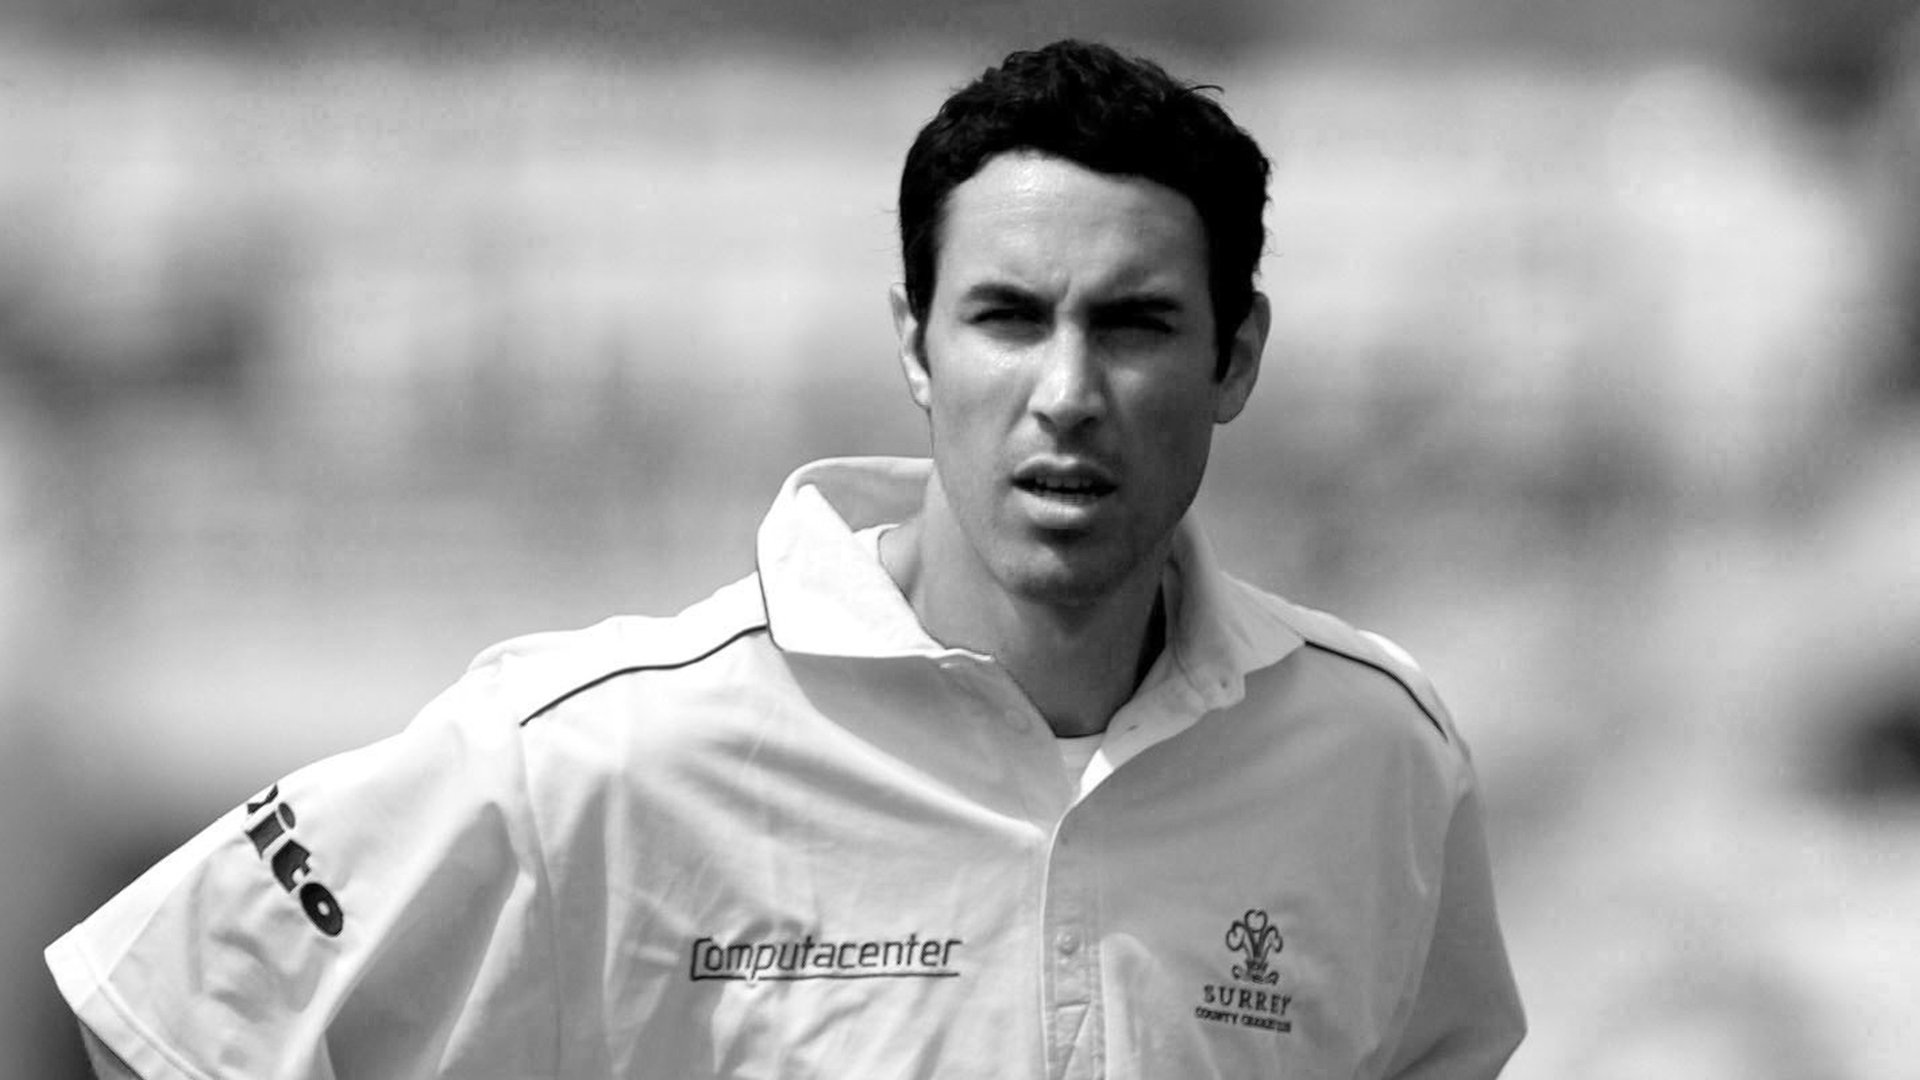 """Surrey Cricket on Twitter: """"Today would have been Ben Hollioake's 42nd birthday. On this special day of remembrance, he is forever in the thoughts of Surrey CCC. #3feathers #CricketFamily… https://t.co/sLF6zNsEjy"""""""